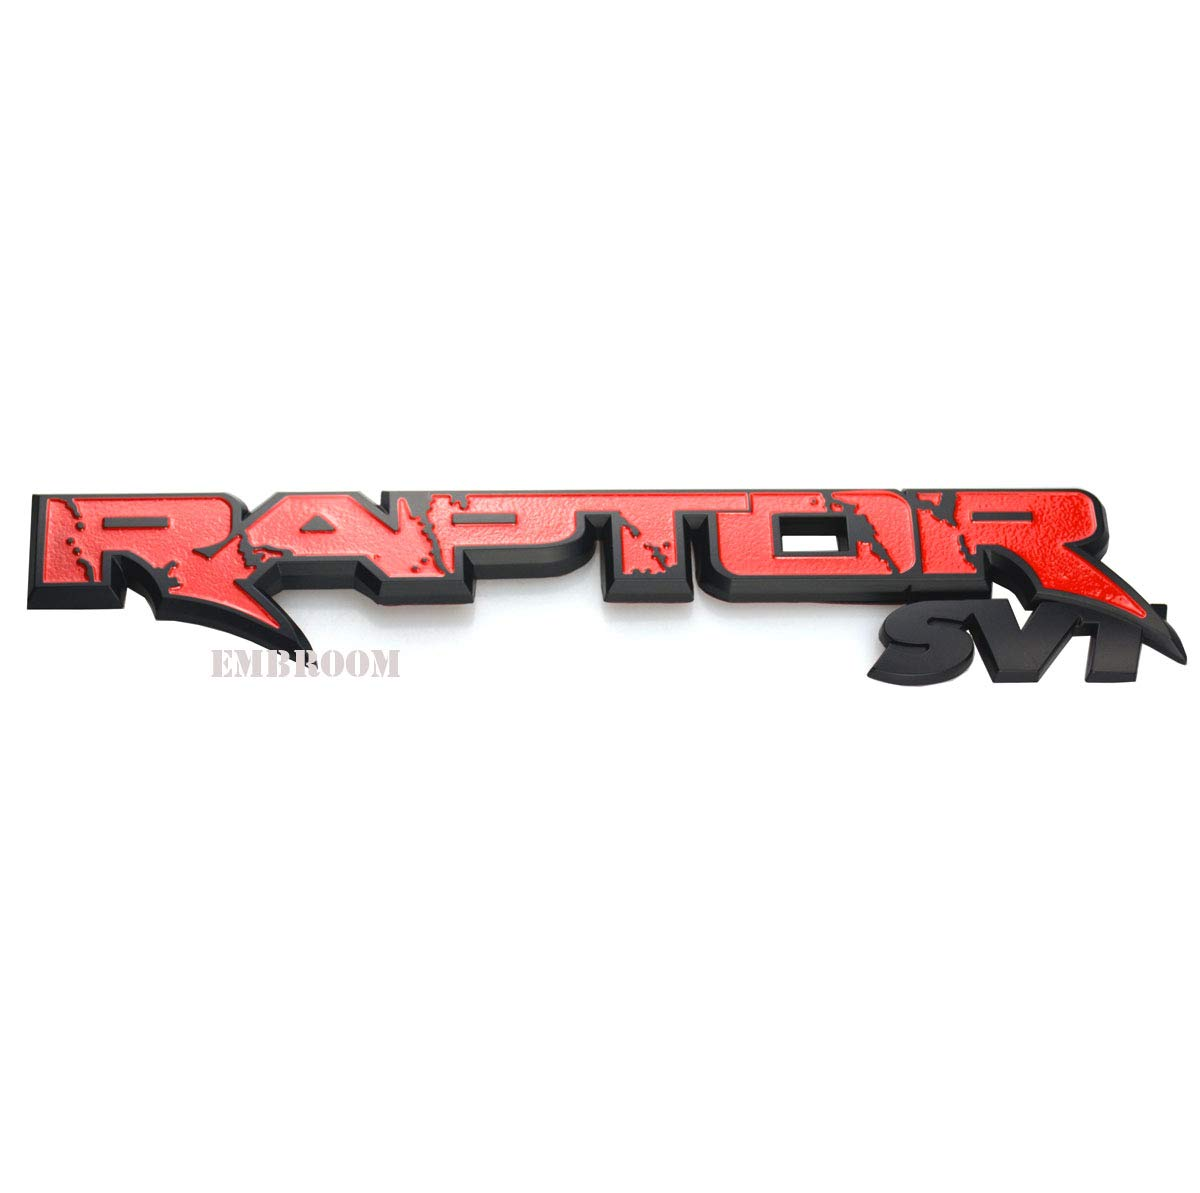 Red EmbRoom Raptor SVT Tailgate Emblem 3D Badge 09-14 Trunk Car Sticker Decal Replacement for Ford F150